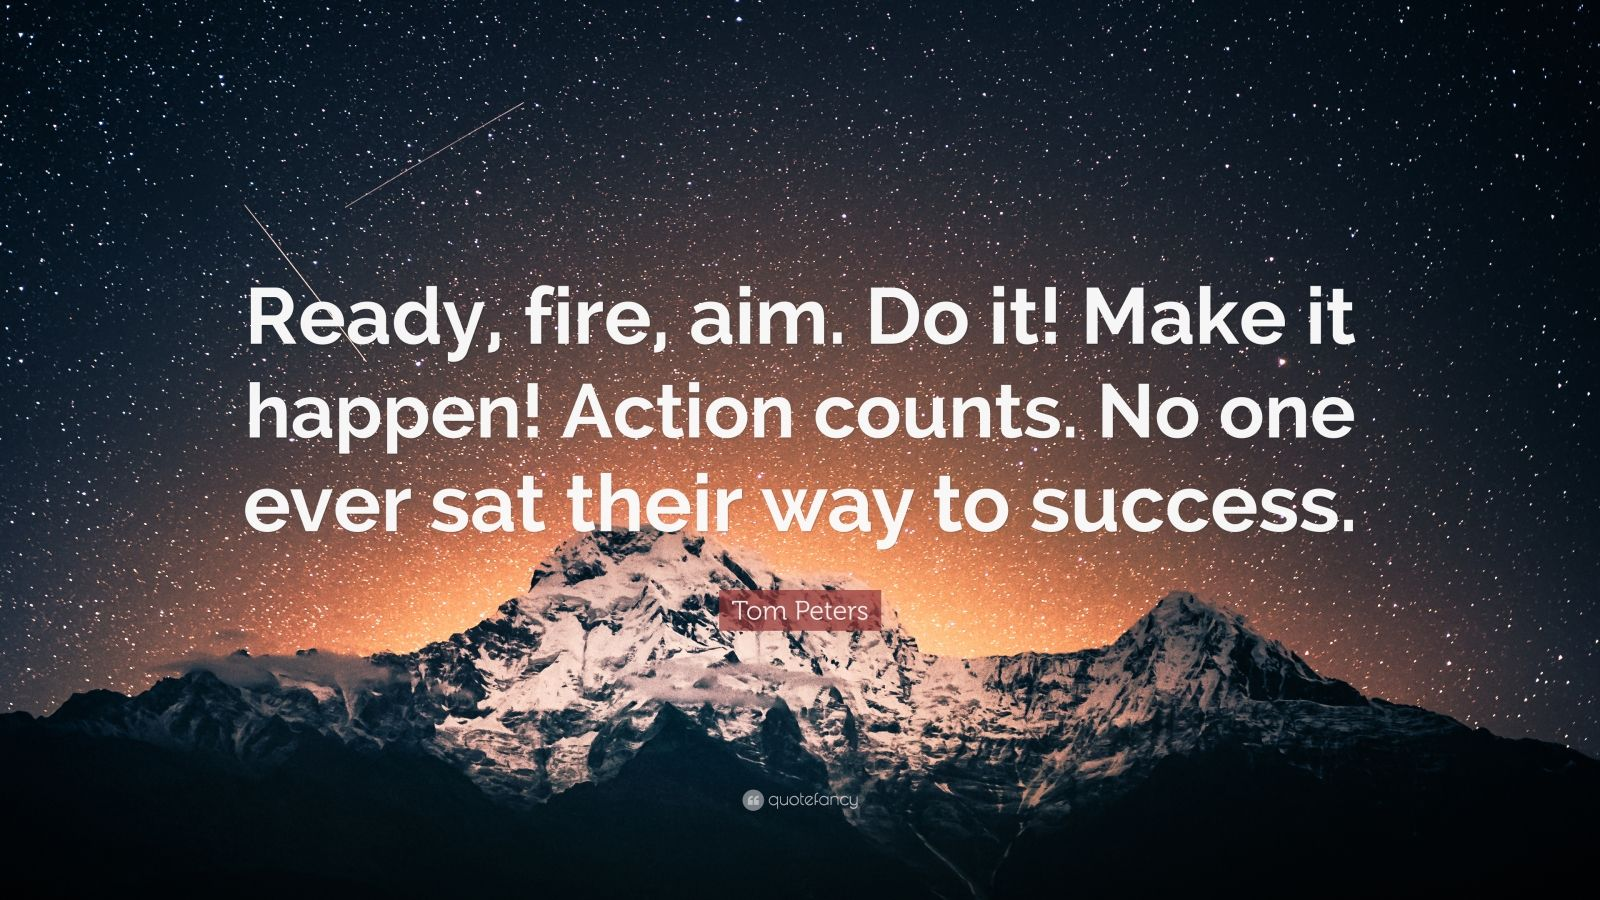 """Tom Peters Quote: """"Ready, fire, aim. Do it! Make it happen! Action counts. No one ever sat their way to success."""""""